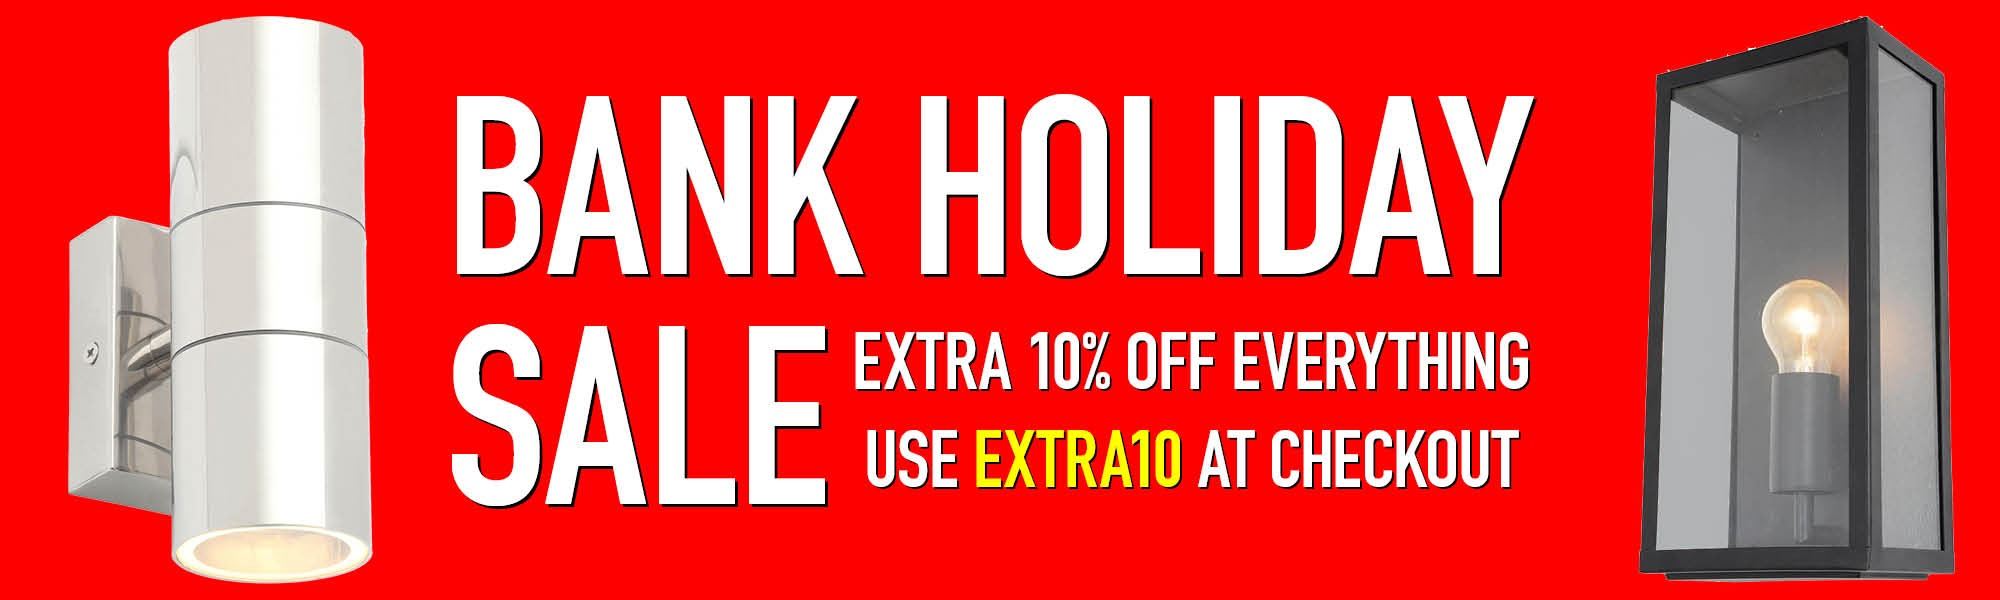 Bank Holiday Sale - Use EXTRA10 at checkout to save 10% off Everything